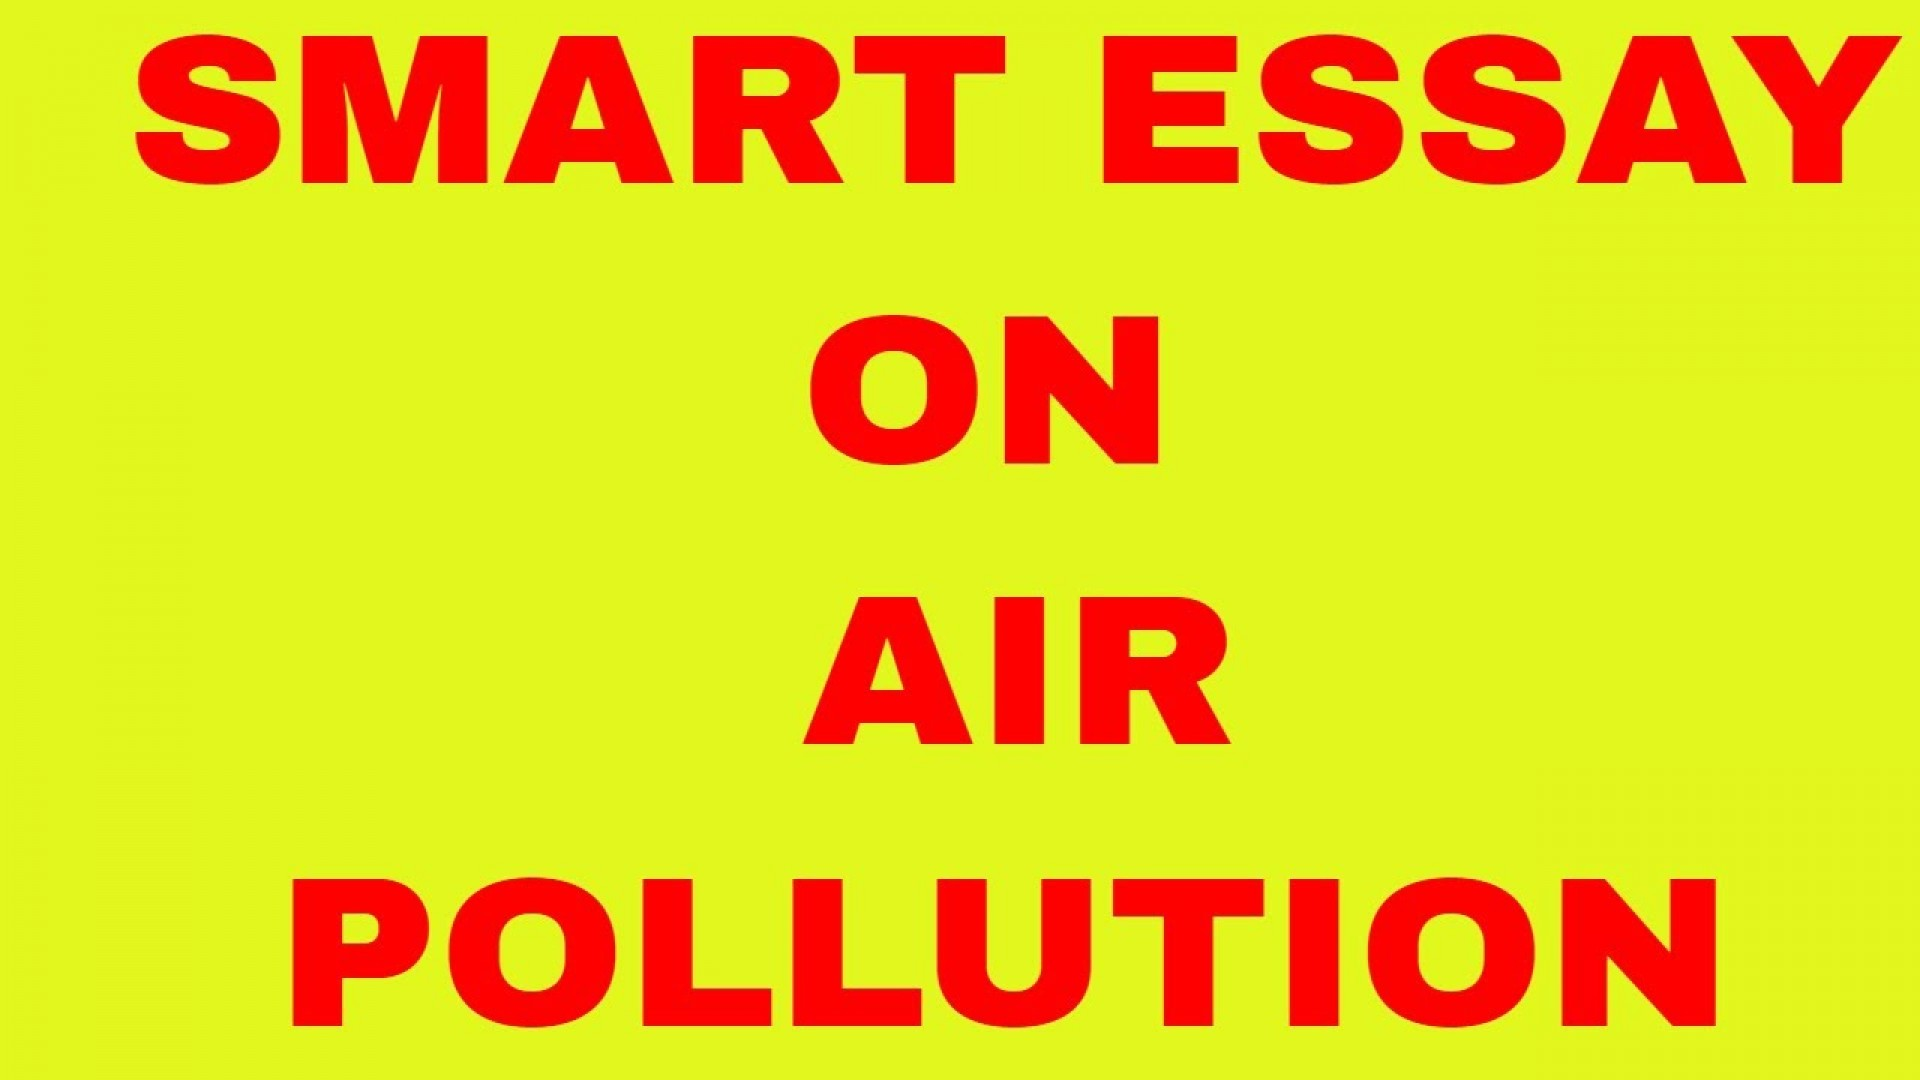 006 Air Pollution Essay Example Sensational Outline Thesis Statement 1920